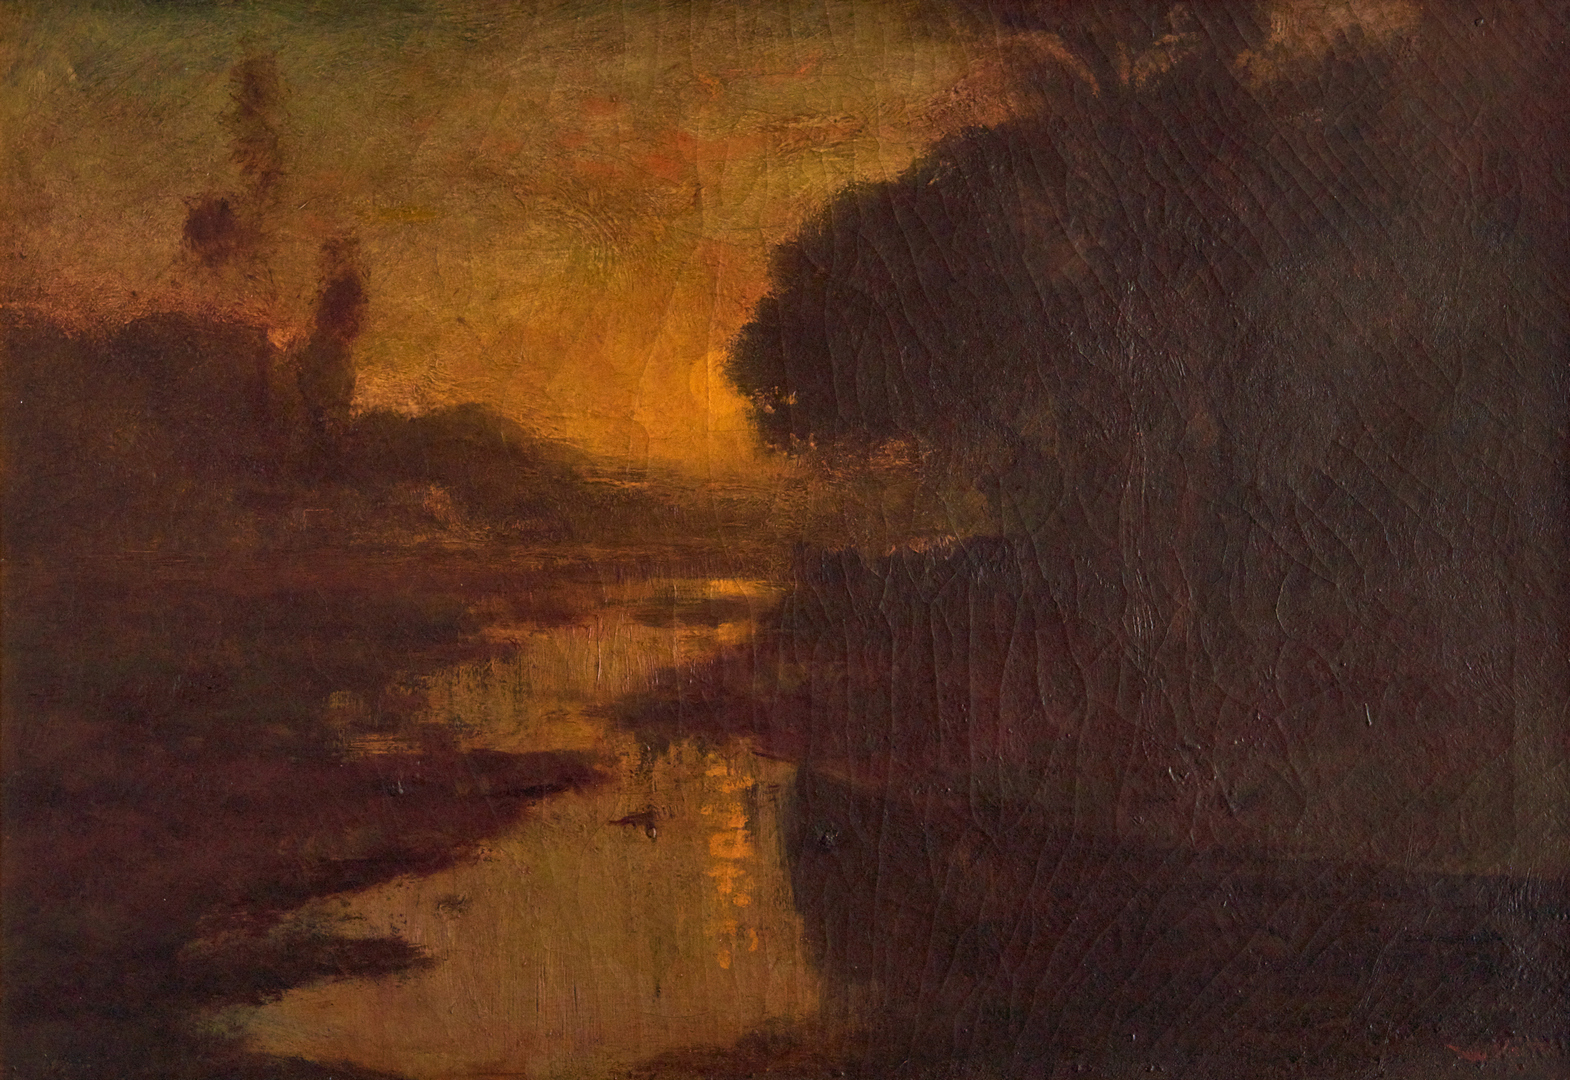 Lot 106: William Keith O/C, River Landscape at Sunset